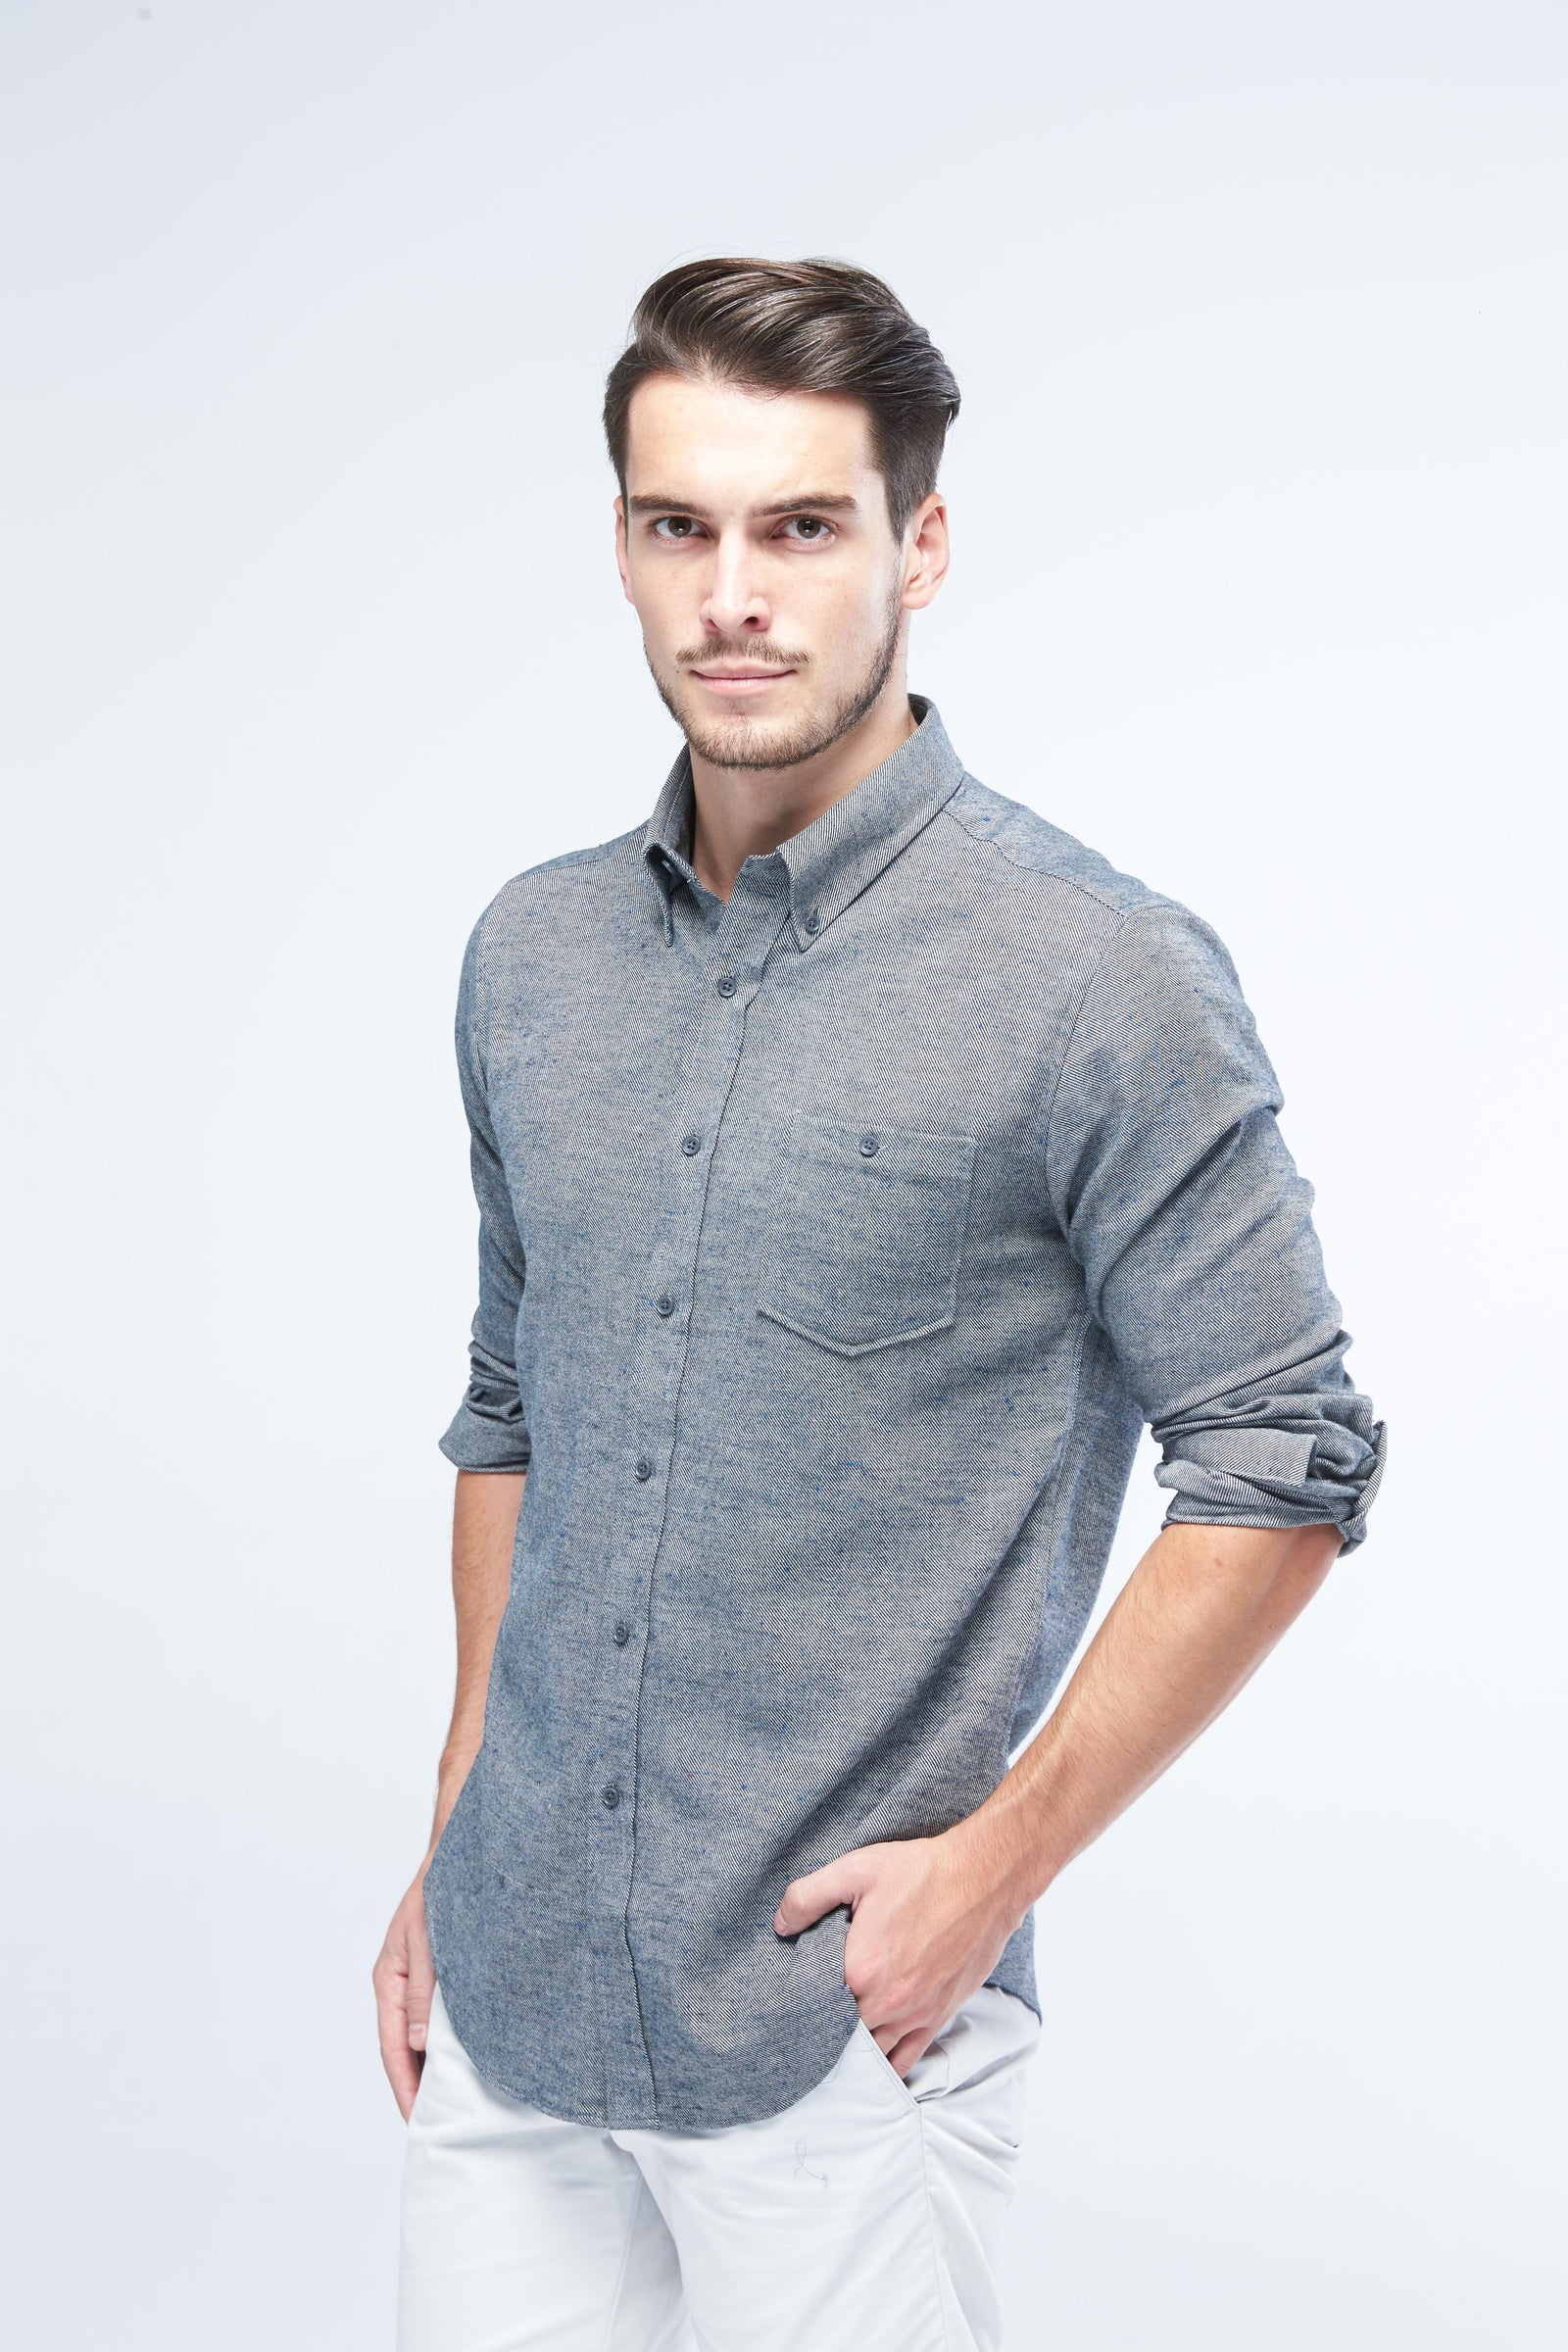 LONG SLEEVE STEEL GREY SHIRT